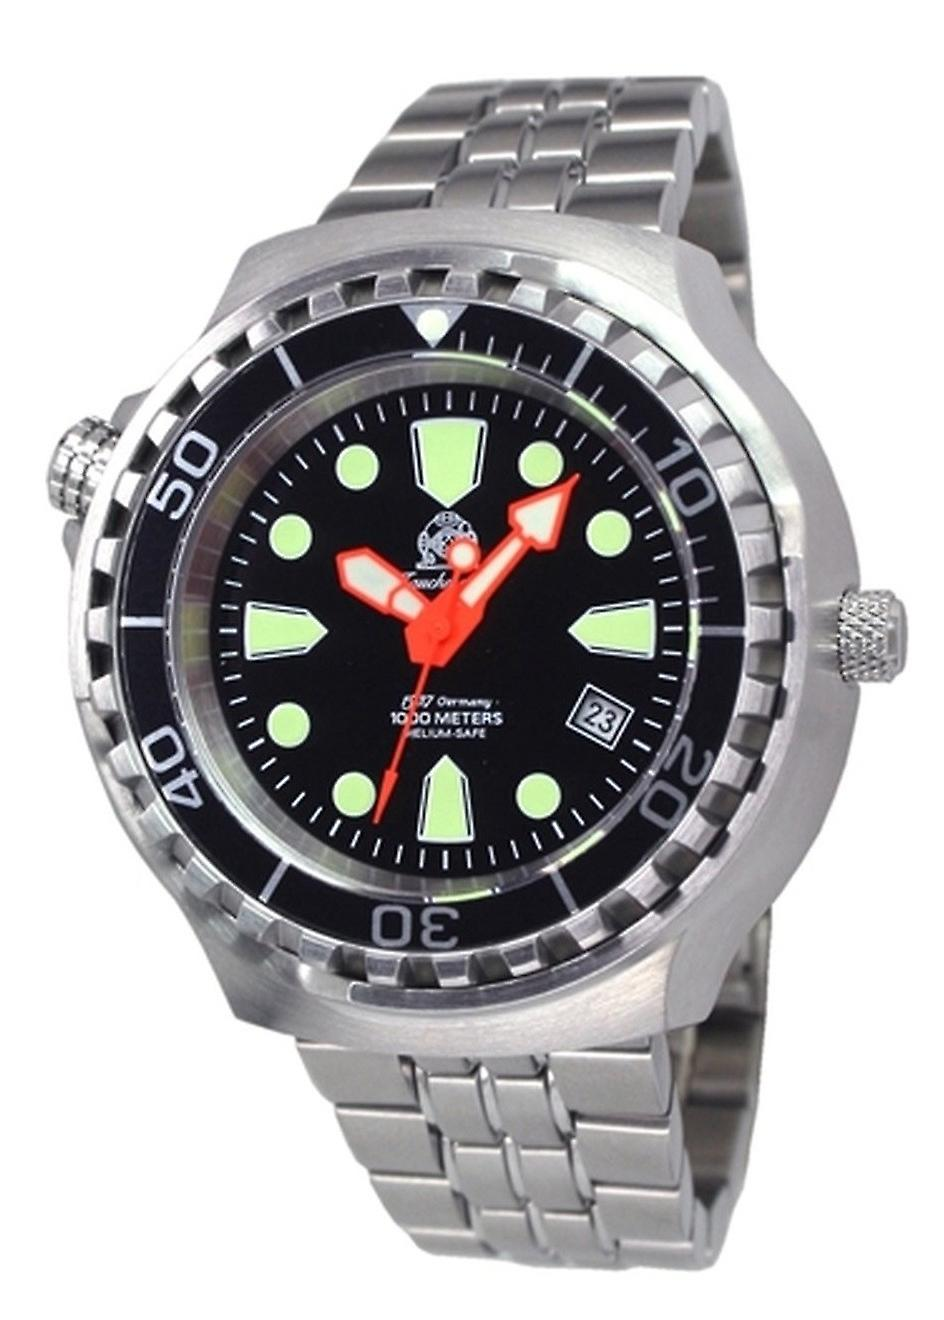 Tauchmeister Steel automatic watch 1000 m Diver Craft T0245m